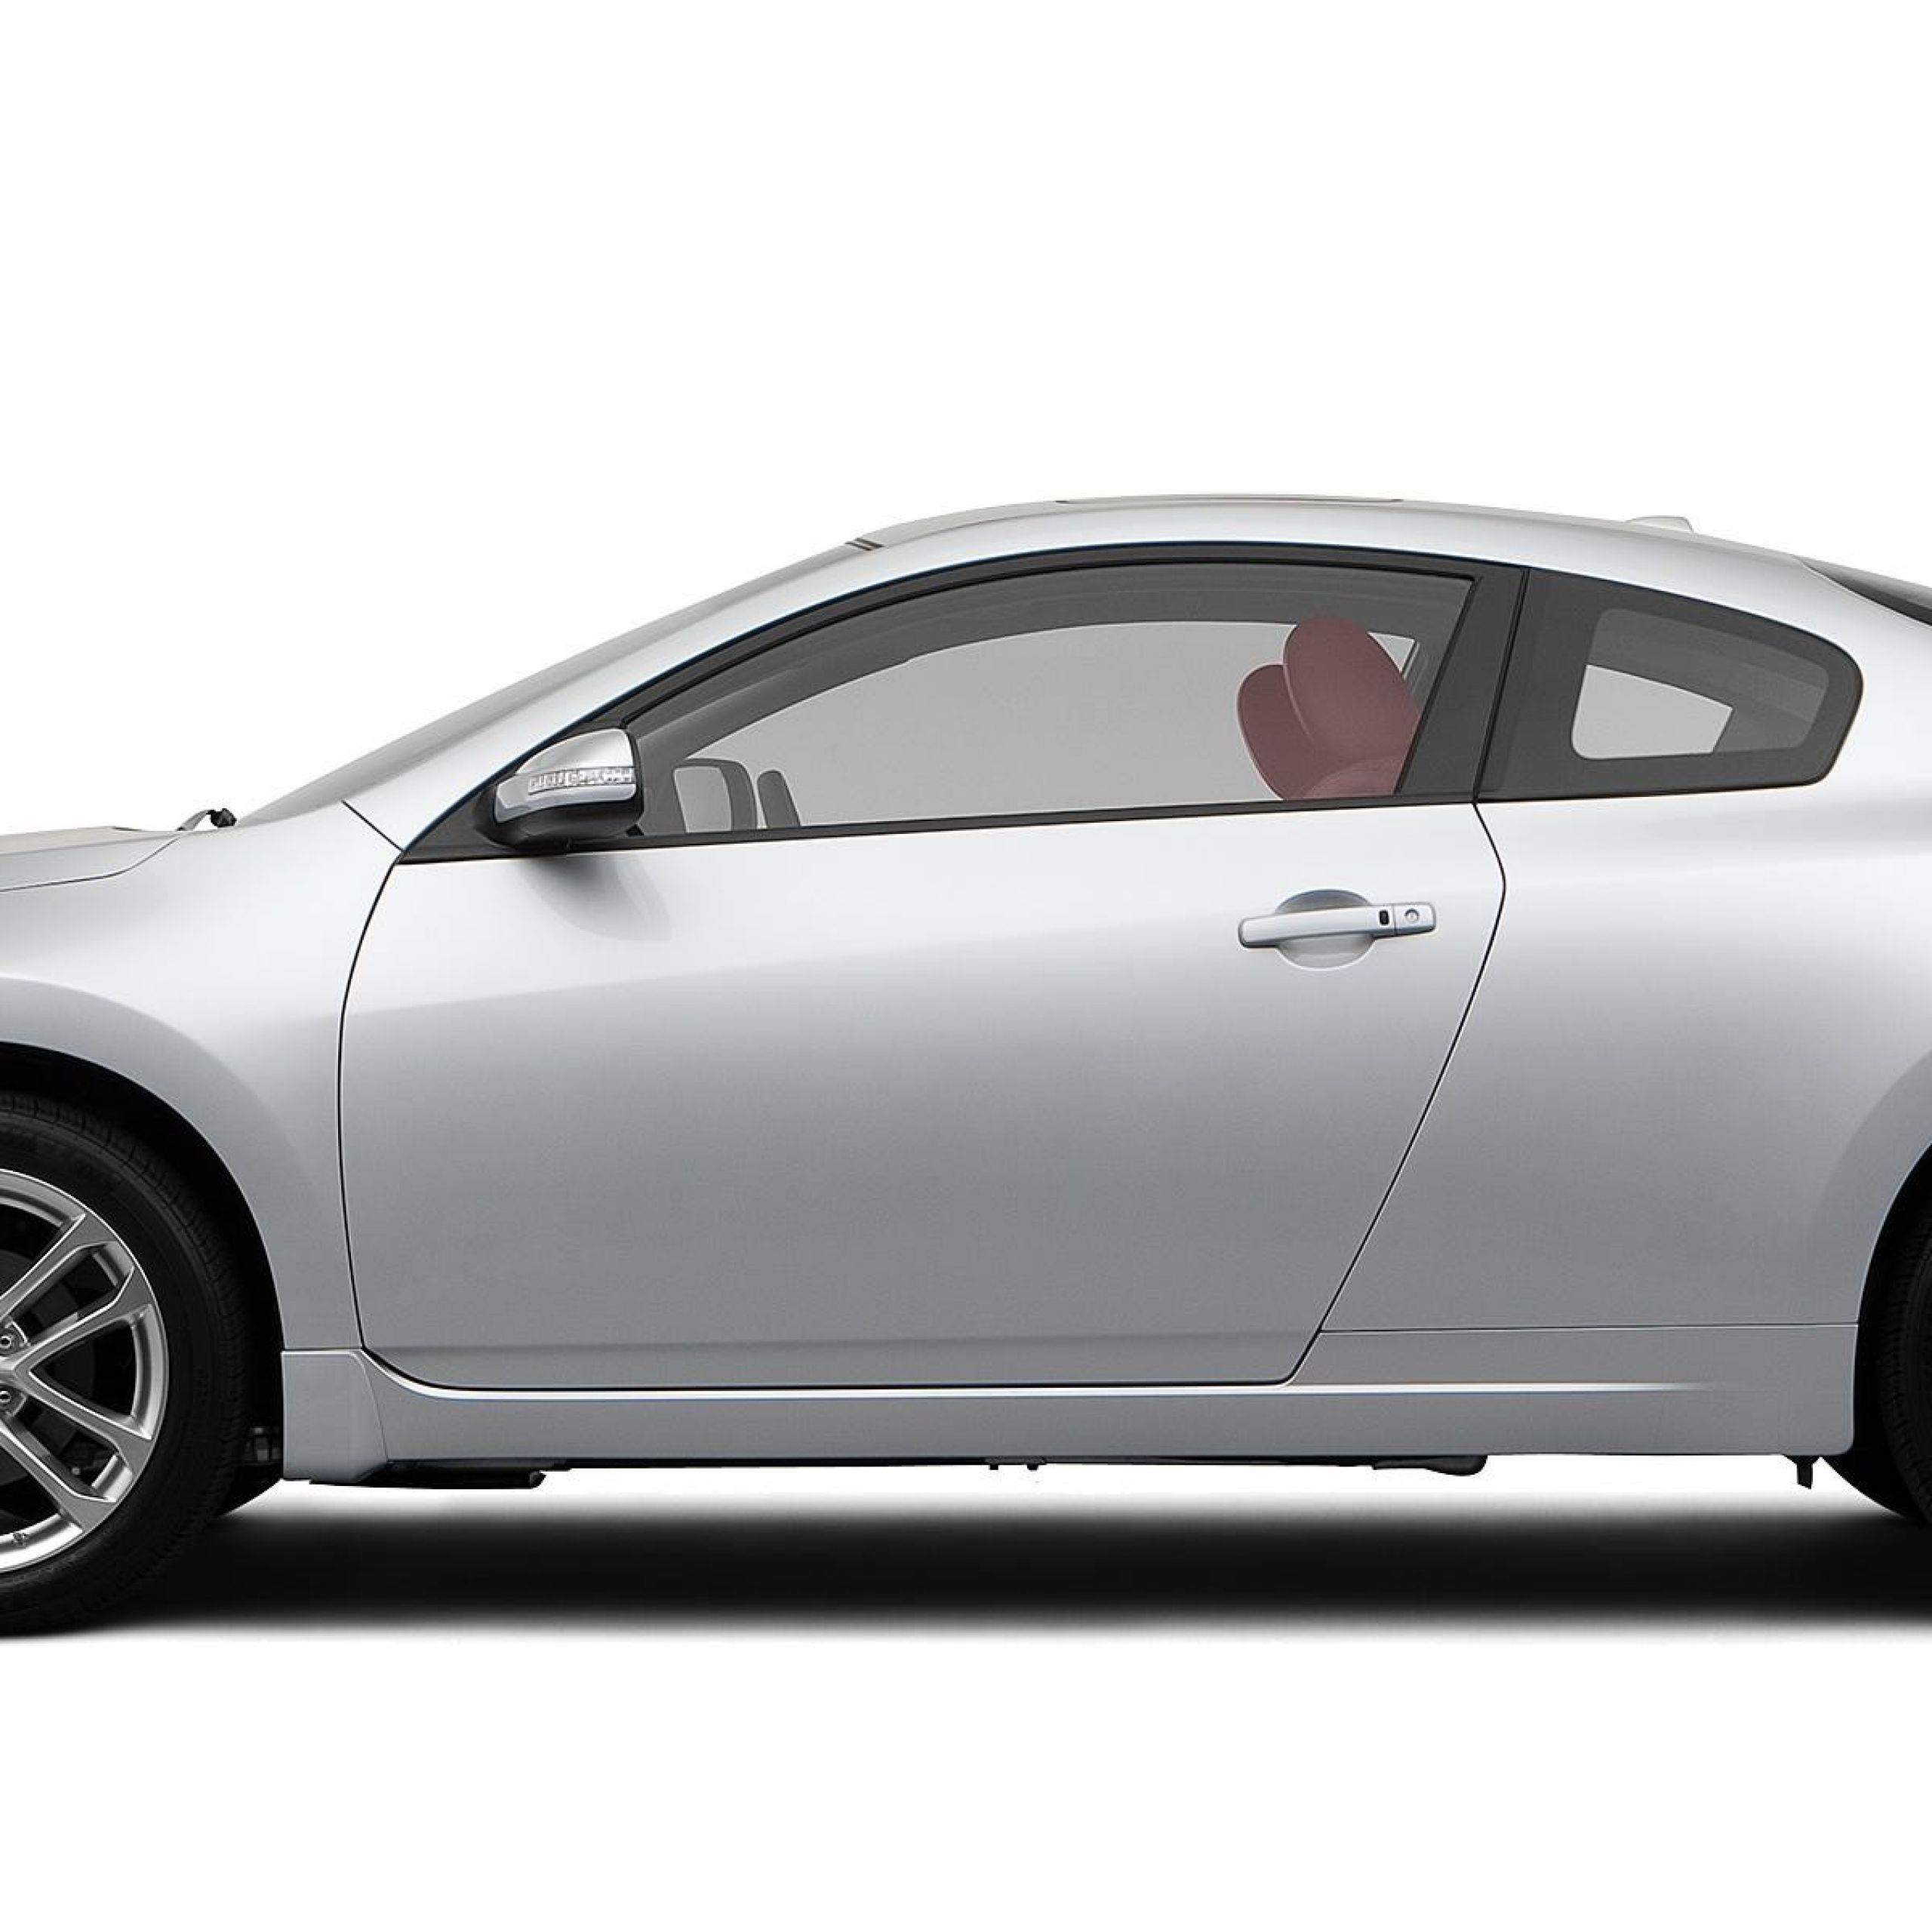 2012 Altima Inspirational 2012 Nissan Altima 3 5 Sr 2dr Coupe Cvt Research Groovecar